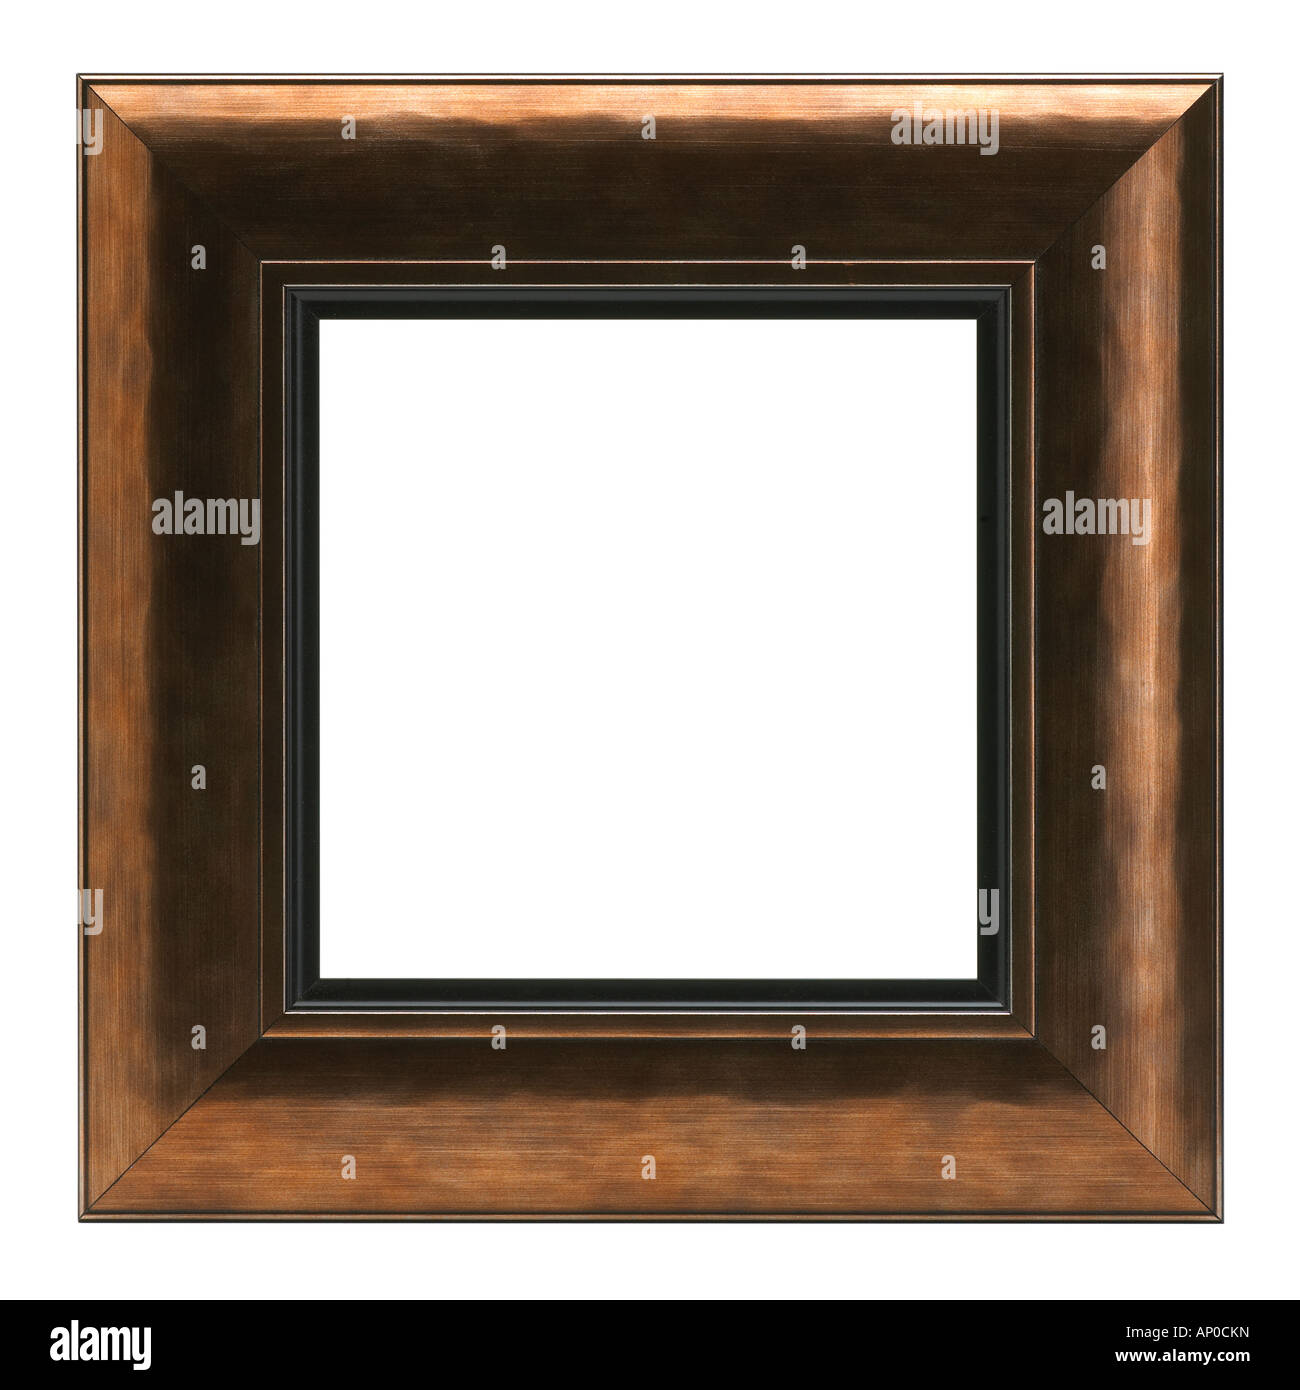 Square gold and dark wood picture frame on white background stock square gold and dark wood picture frame on white background jeuxipadfo Gallery